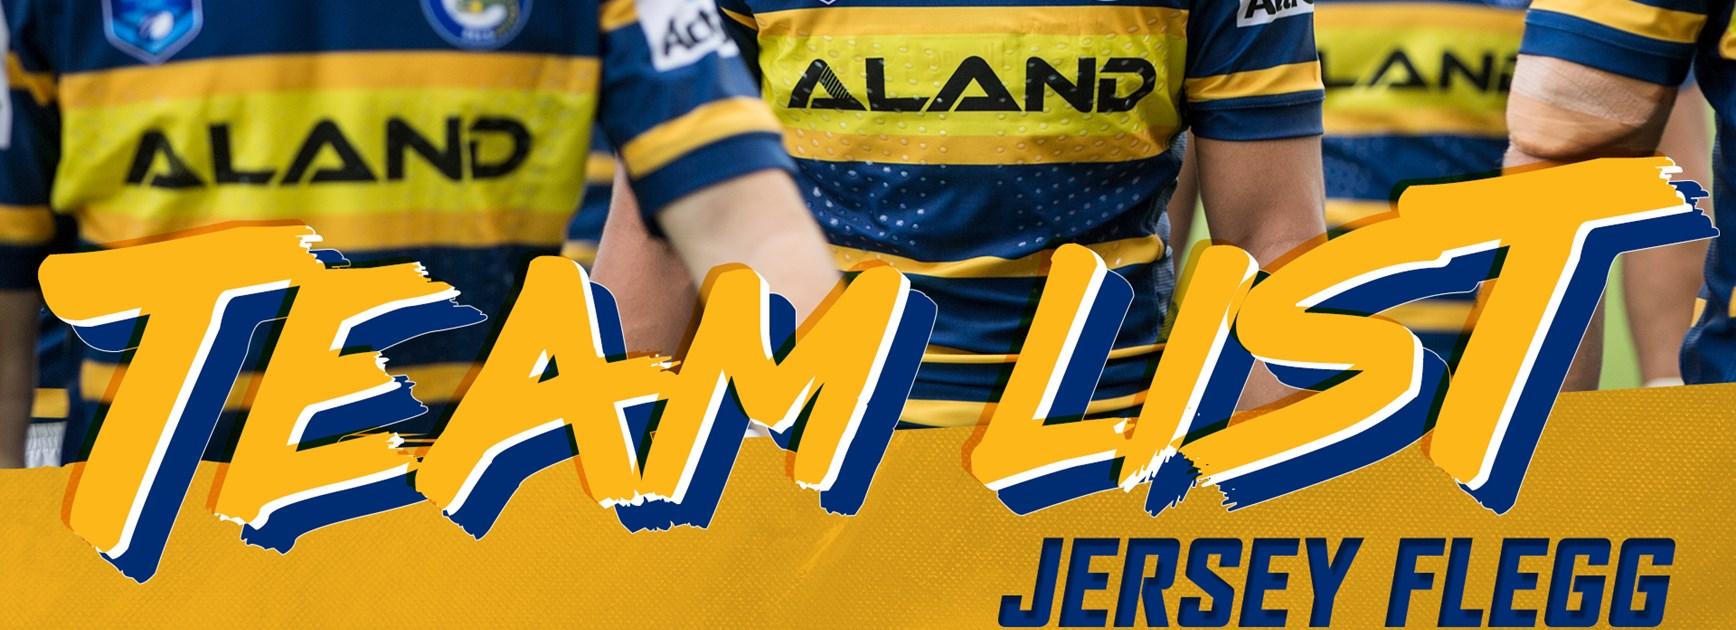 Eels Jersey Flegg Round Six Team List